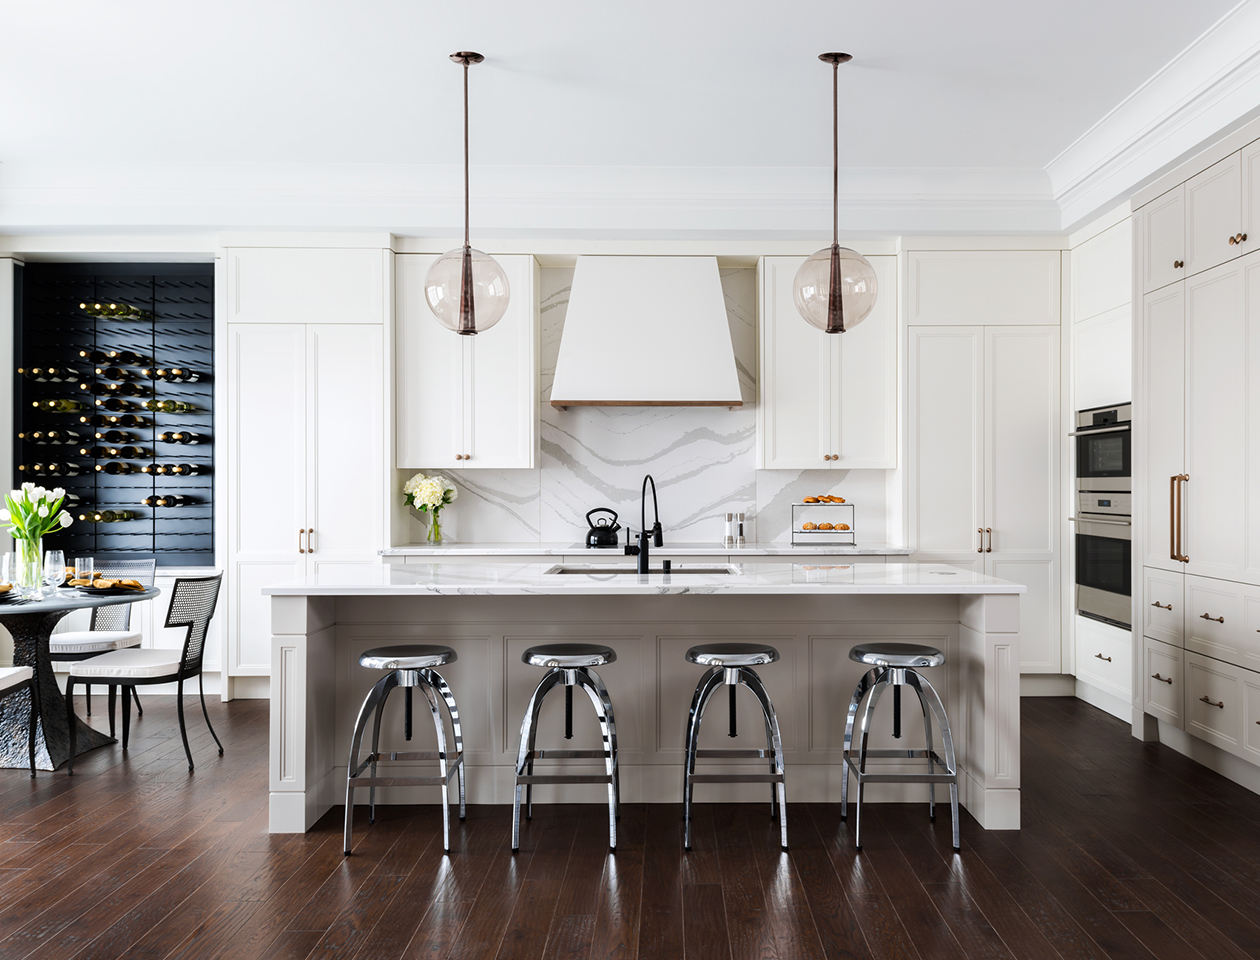 Green Counter Height Stools